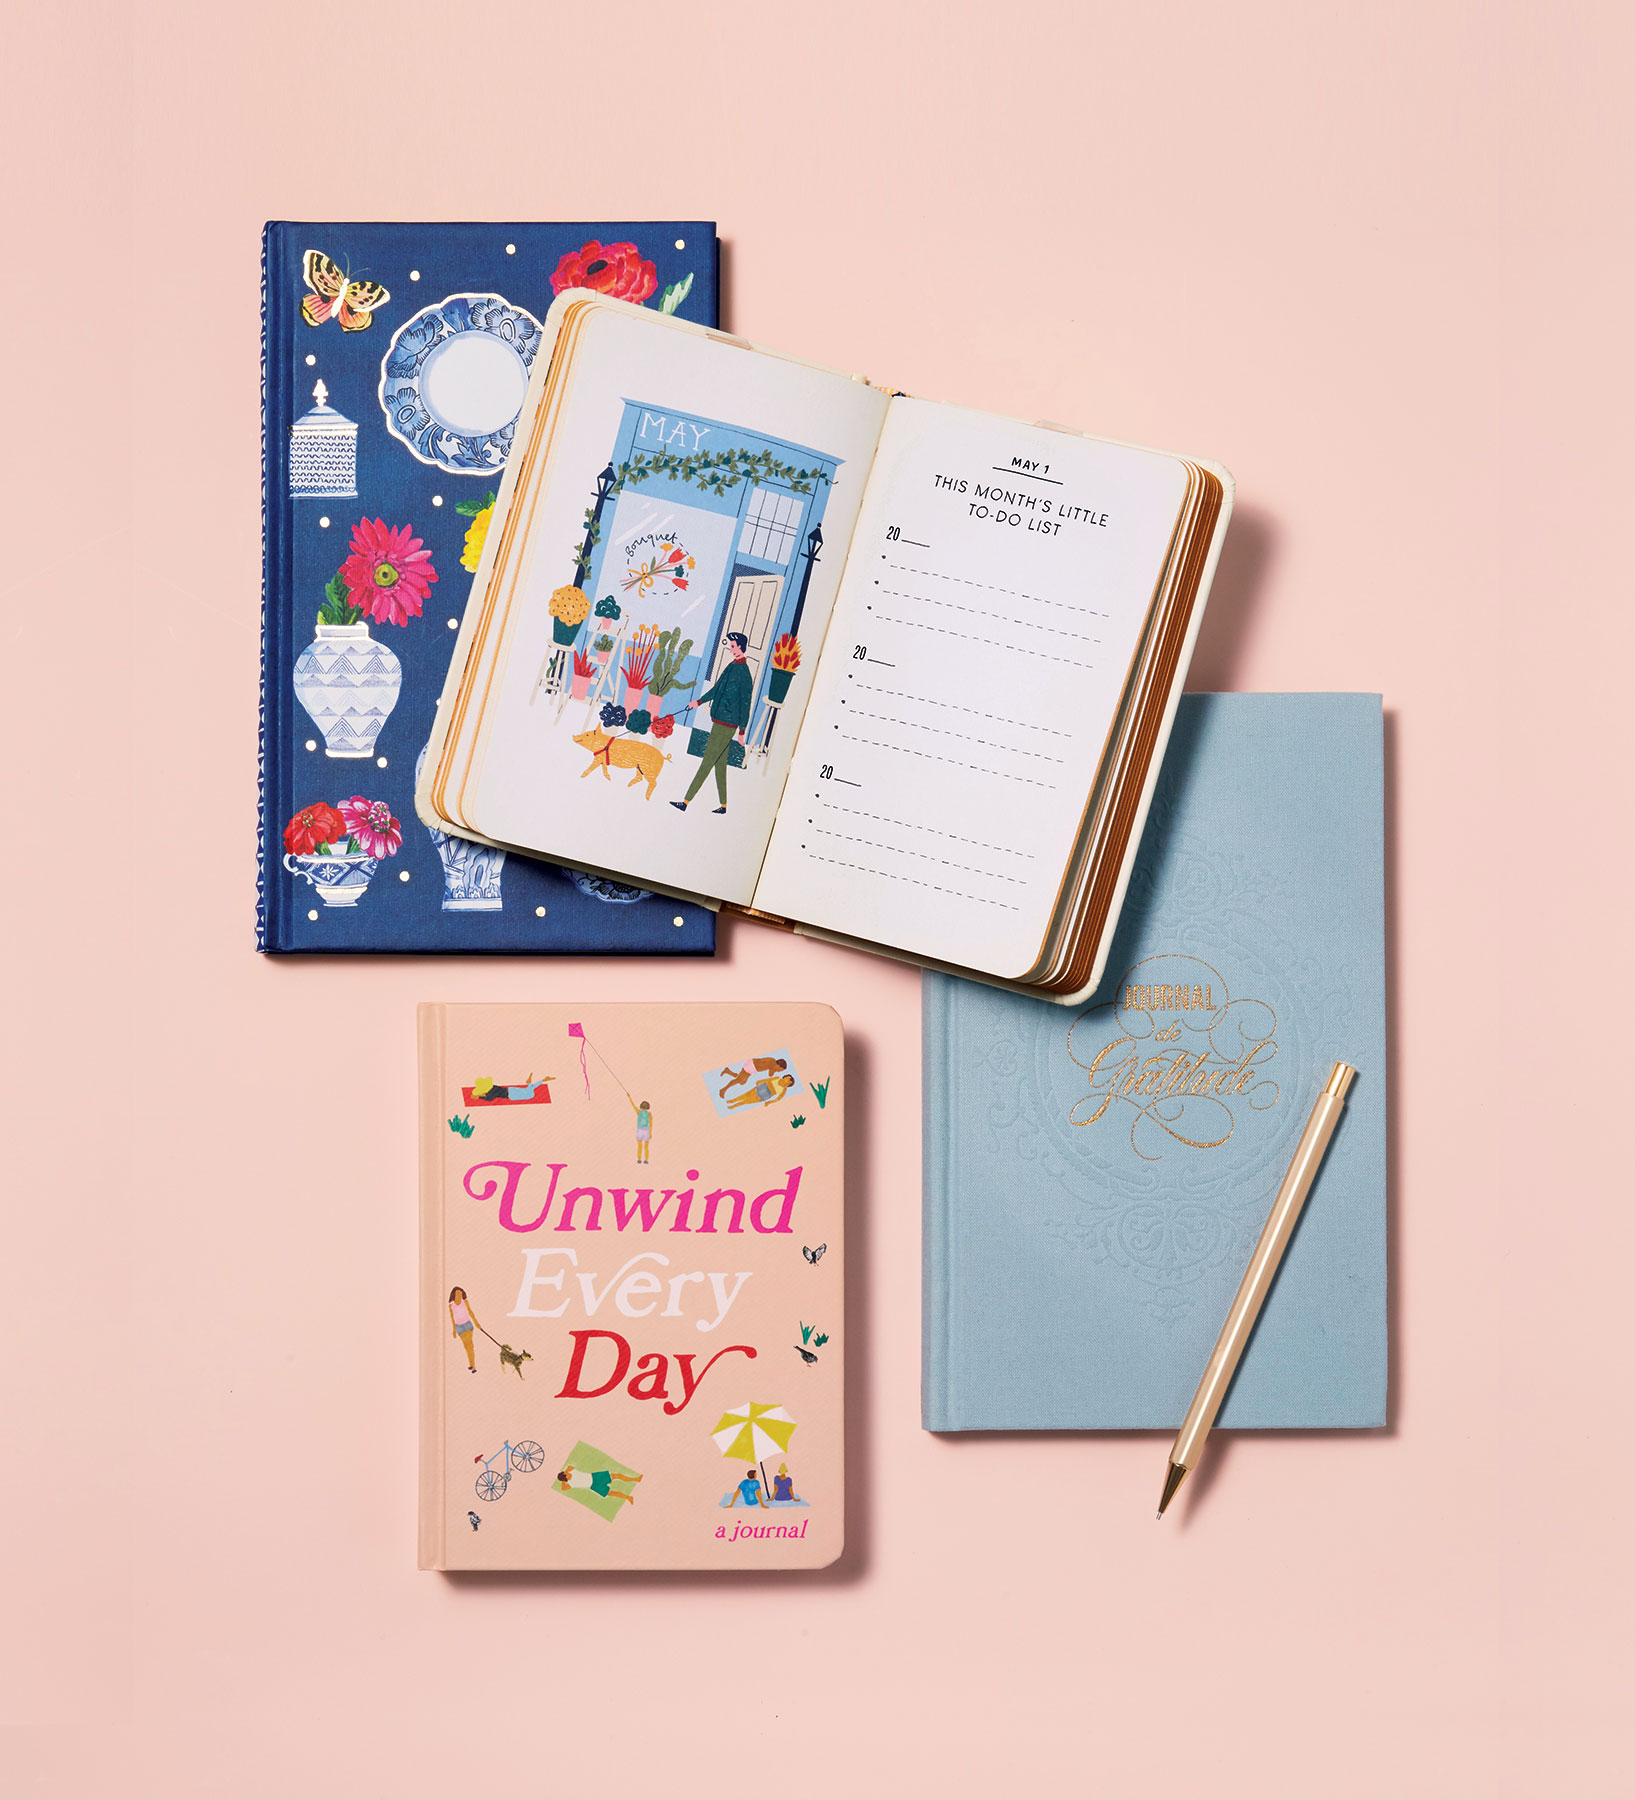 Collection of journals